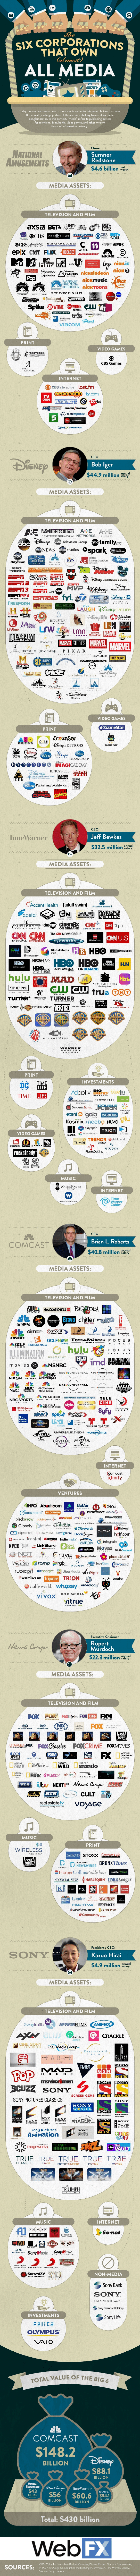 the-6-companies-that-own-almost-all-media-infographic3.png